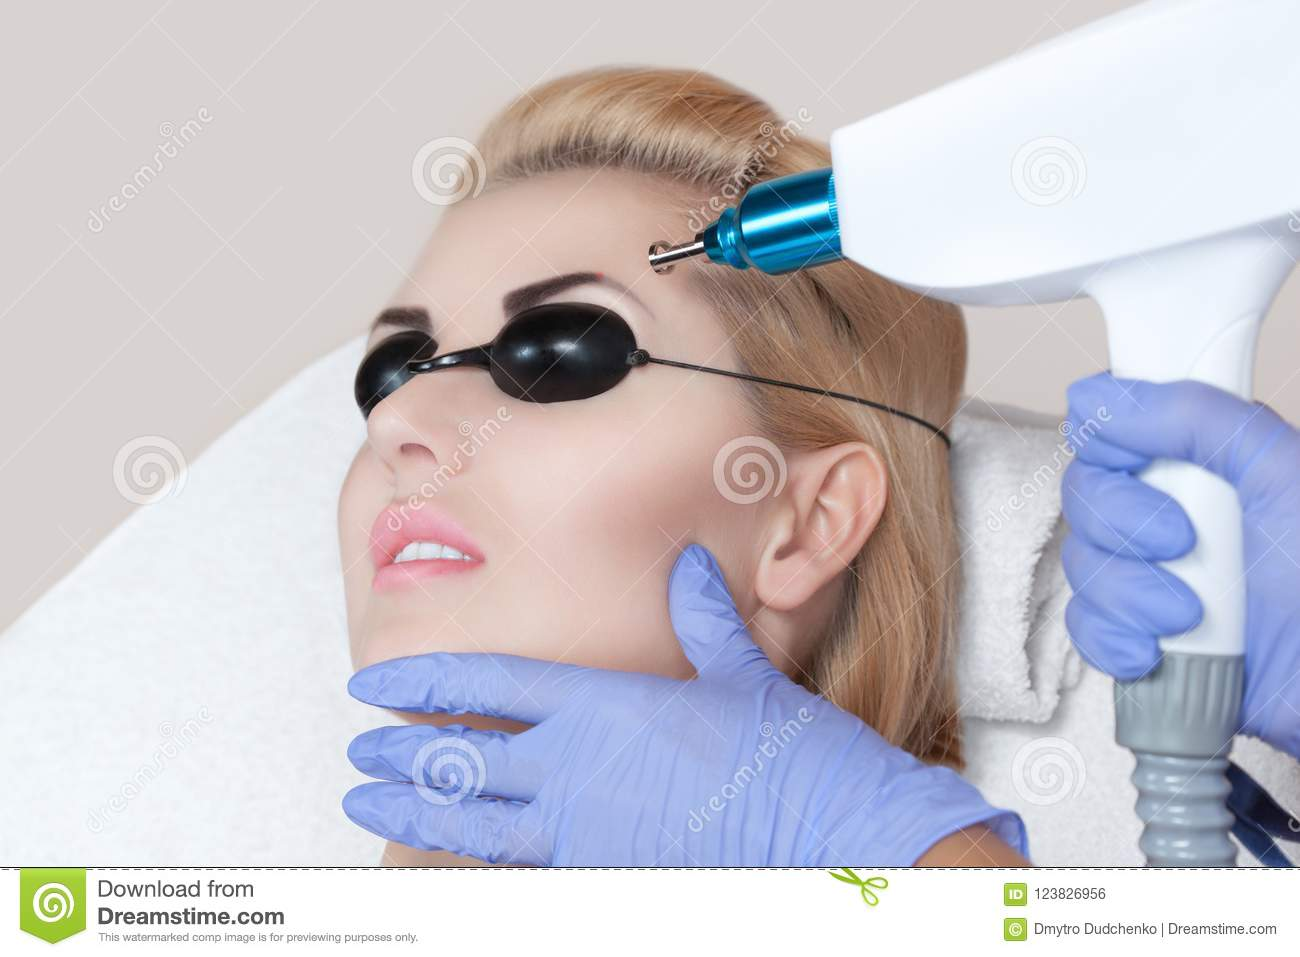 Laser Tattoo Removal On Woman`s Eyebrows Stock Photo ...